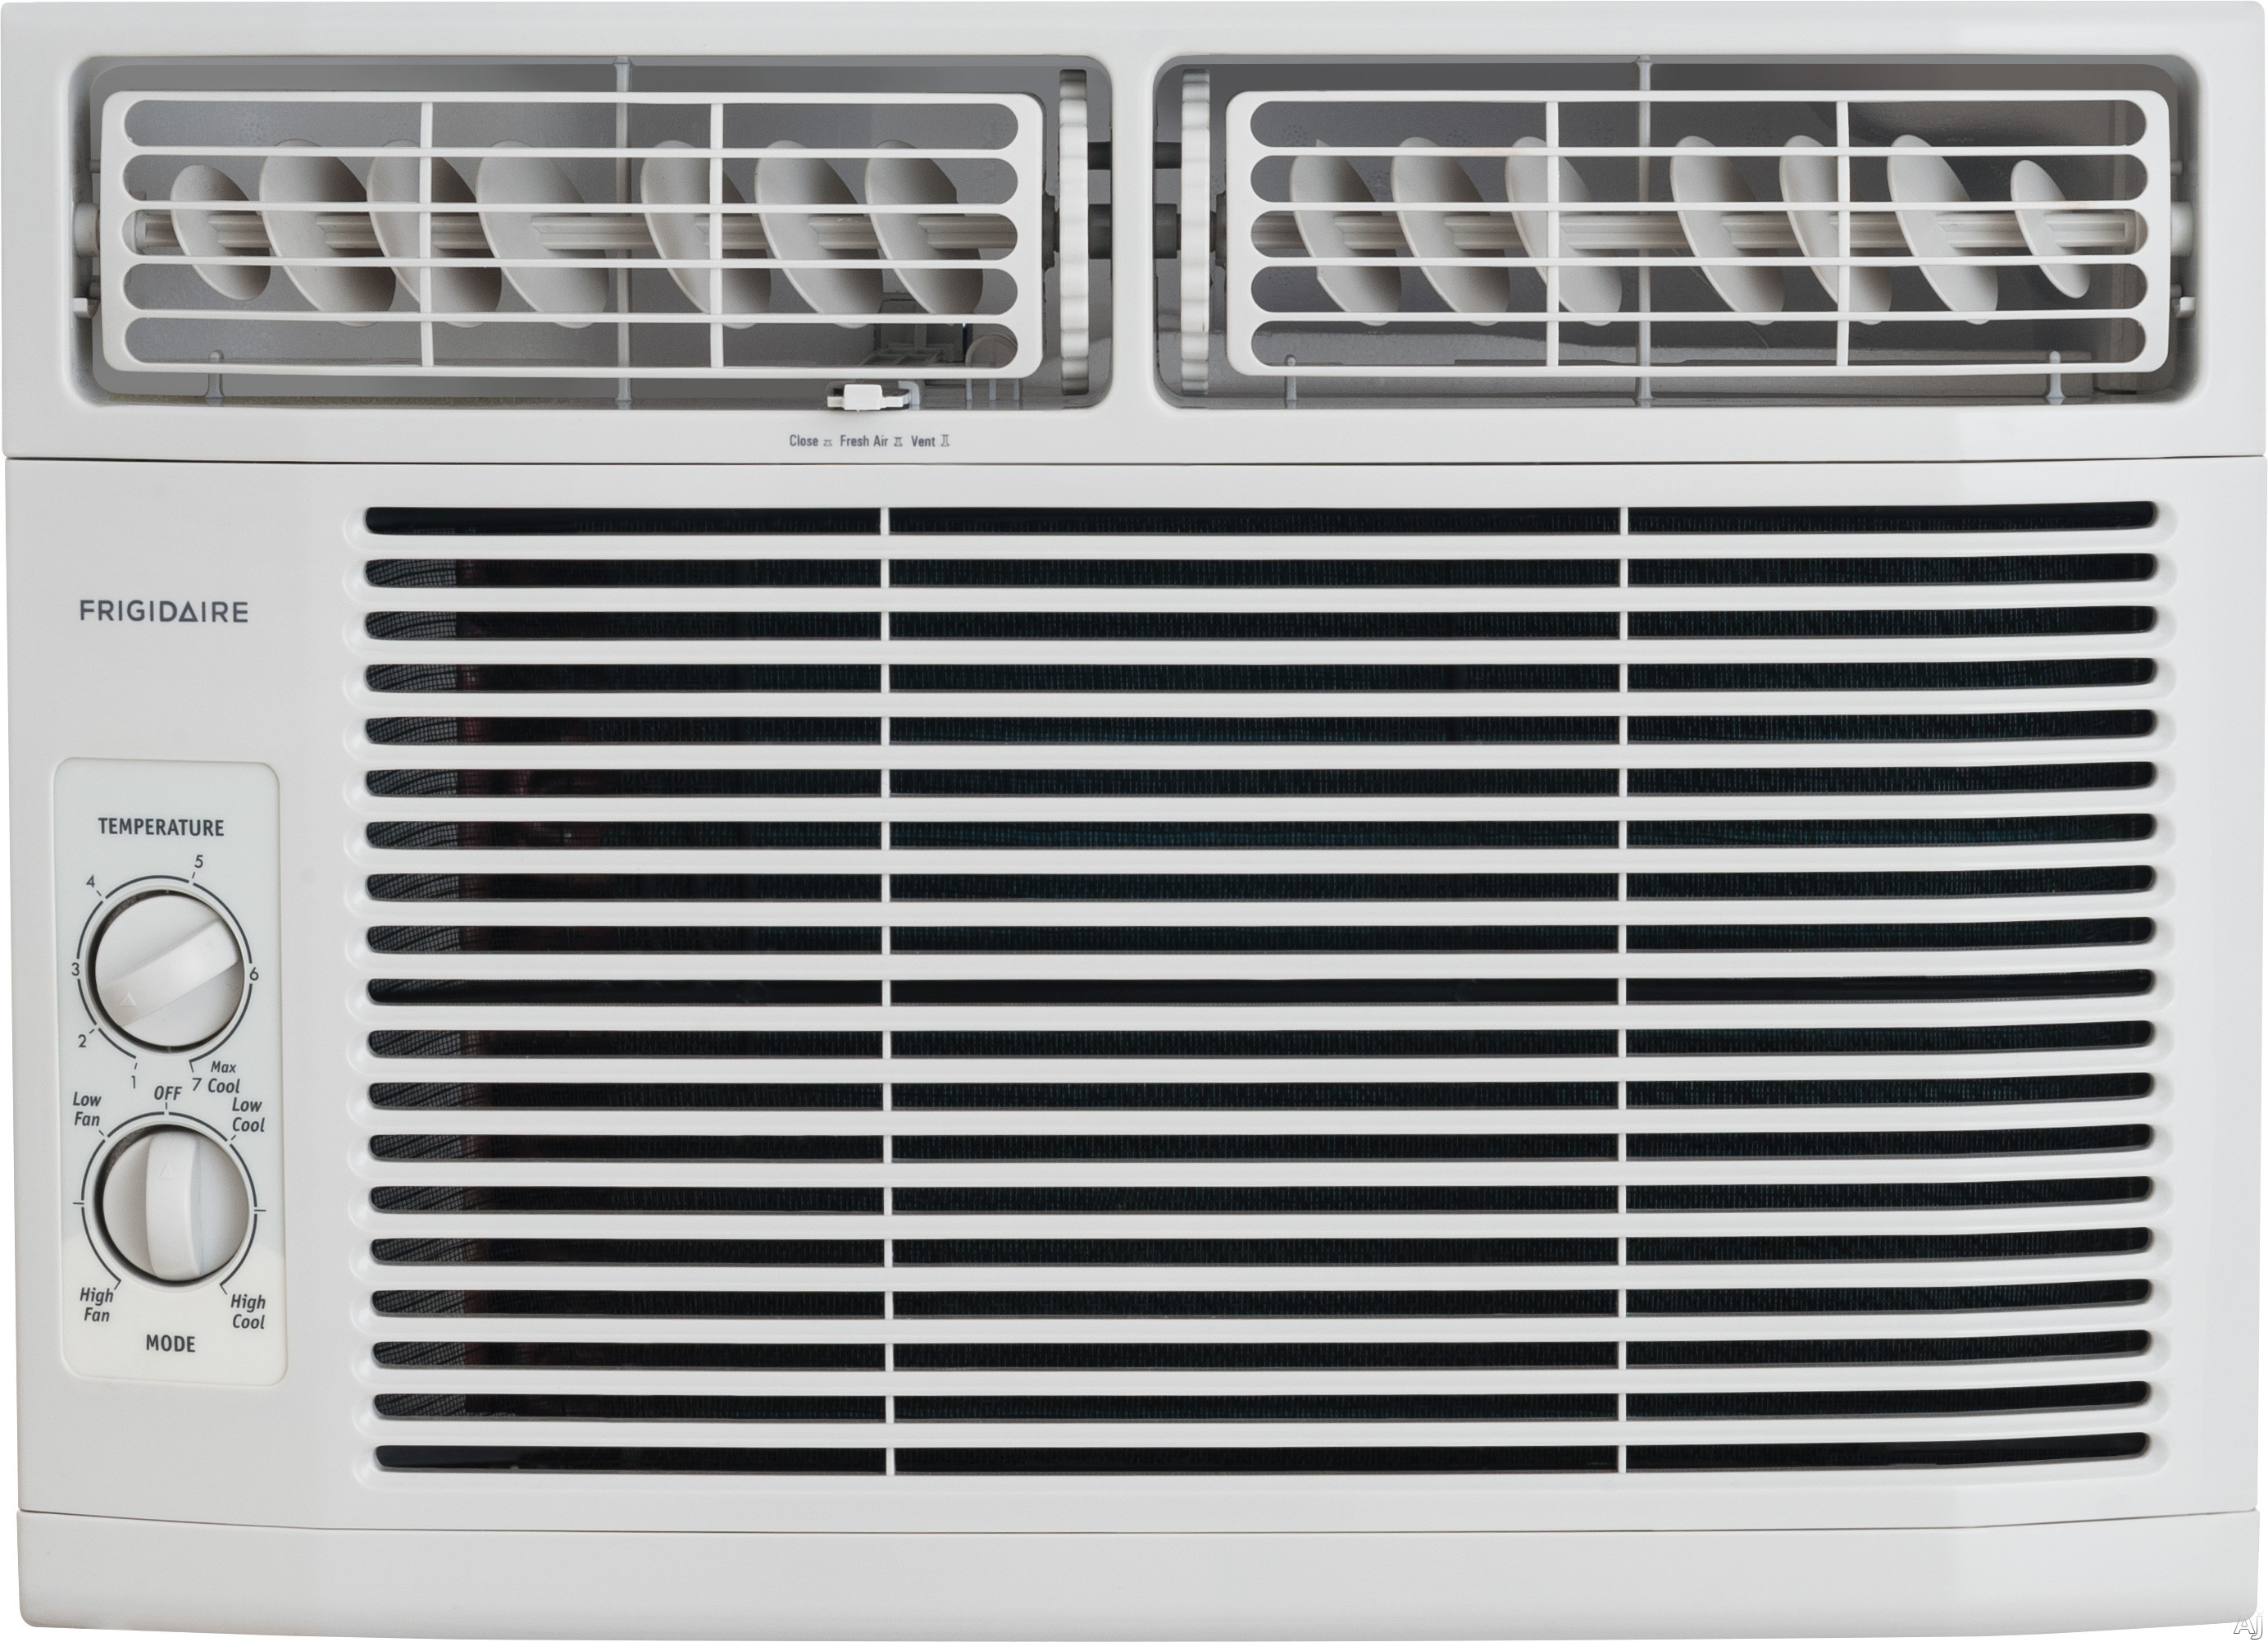 Frigidaire FFRA1011R1 10,000 BTU Window Air Conditioner with 10.9 EER, R-410A Refrigerant, 2.7 Pts/Hr Dehumidification, 450 sq. ft. Cooling Area, 3 Fan Speeds and Mechanical Controls FFRA1011R1